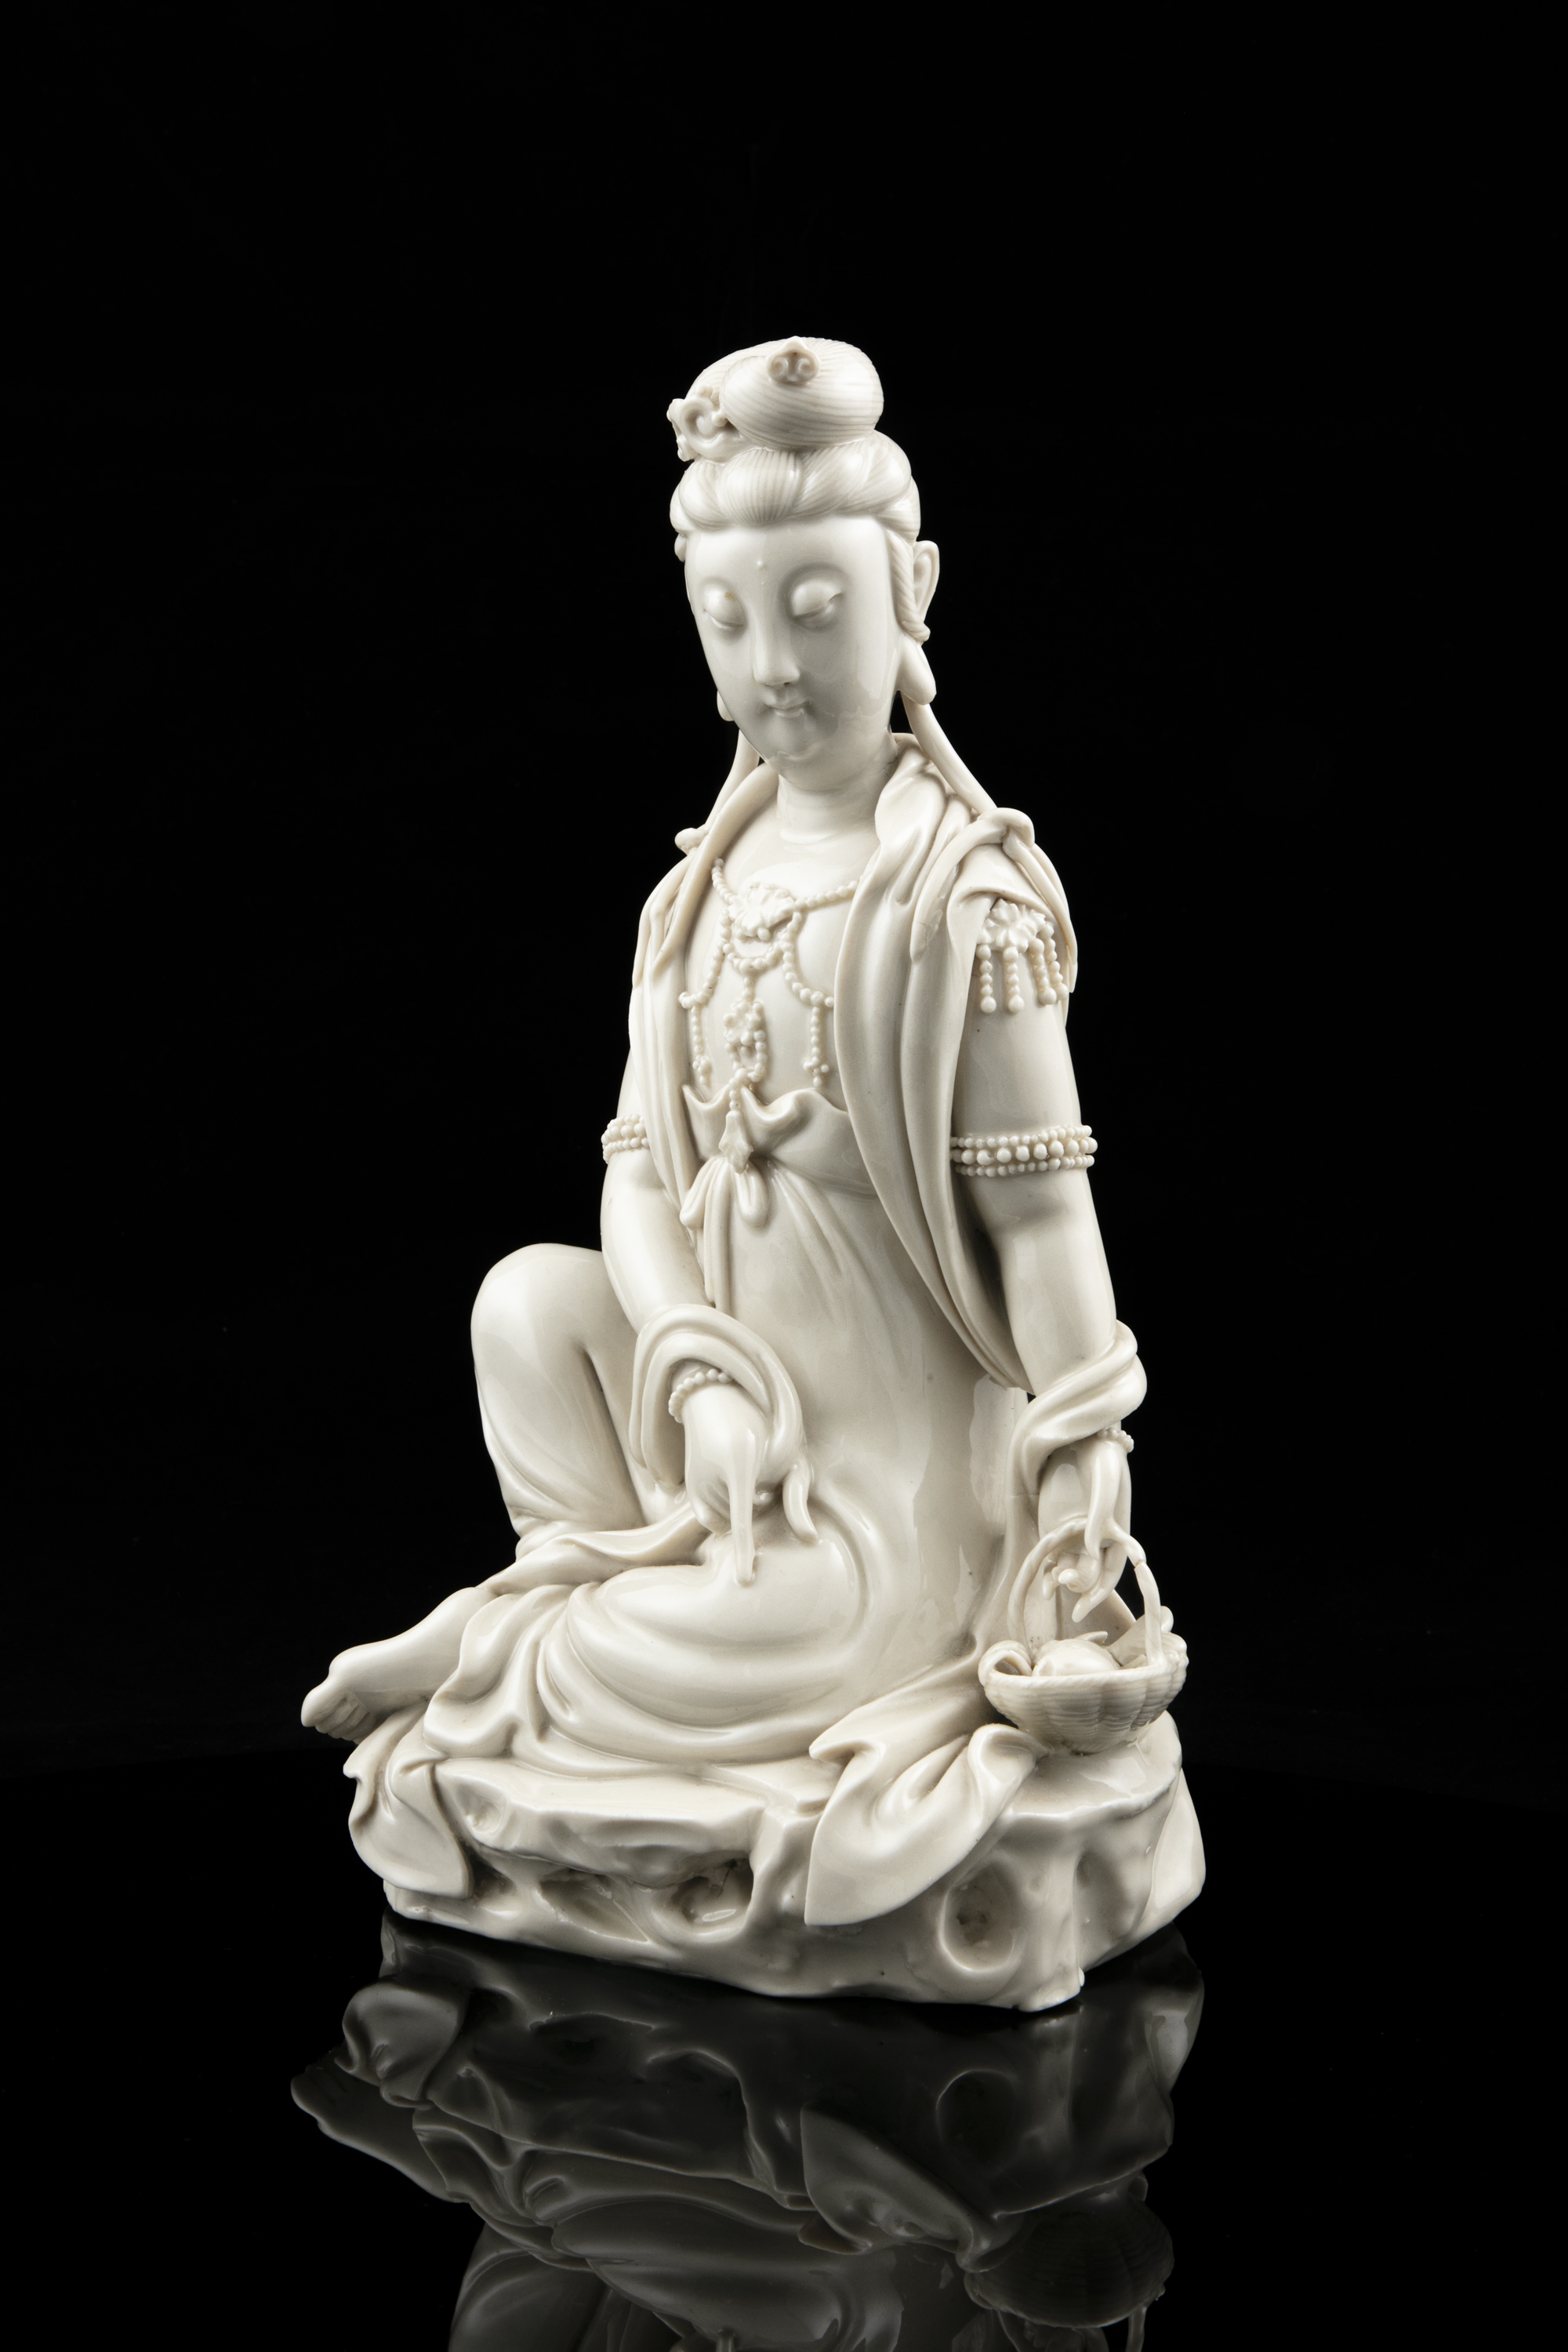 A LARGE DEHUA FIGURE OF A SEATED GUANYIN IMPRESSED WITH A HE CHAOZONG 何朝宗 CALABASH SHAPED SEAL - Image 15 of 48